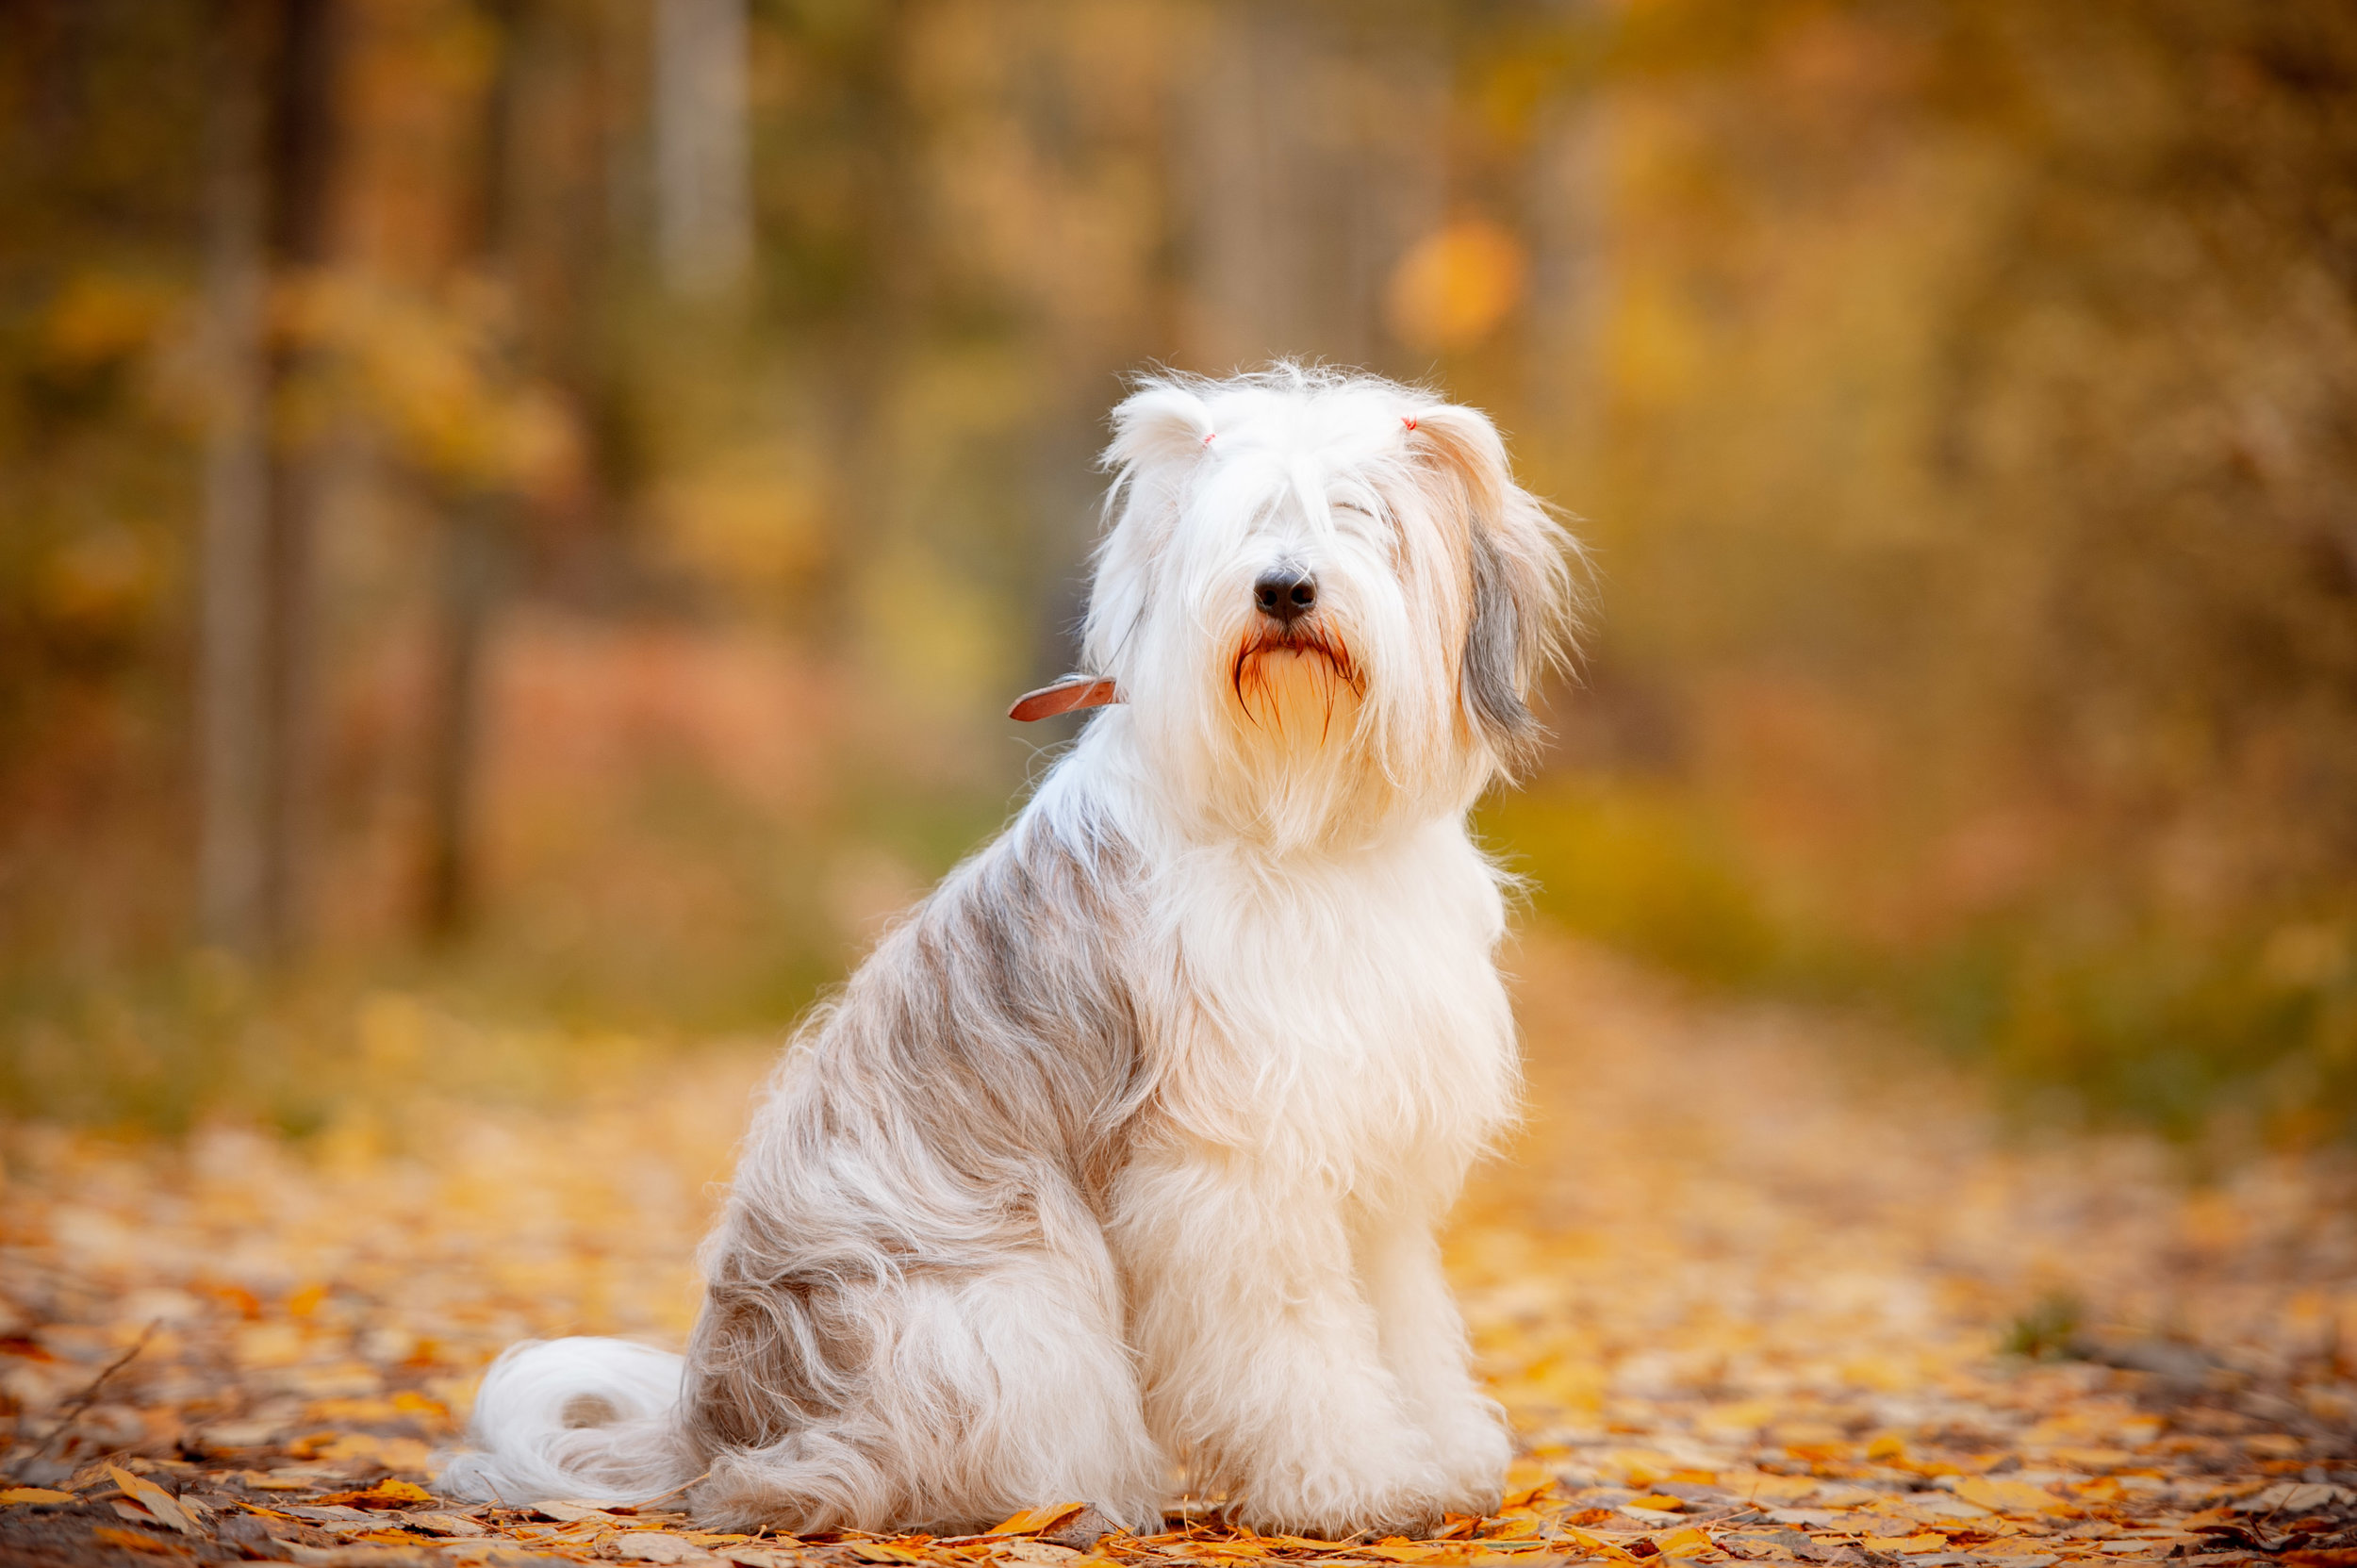 - And the award for most handsome dog goes to…